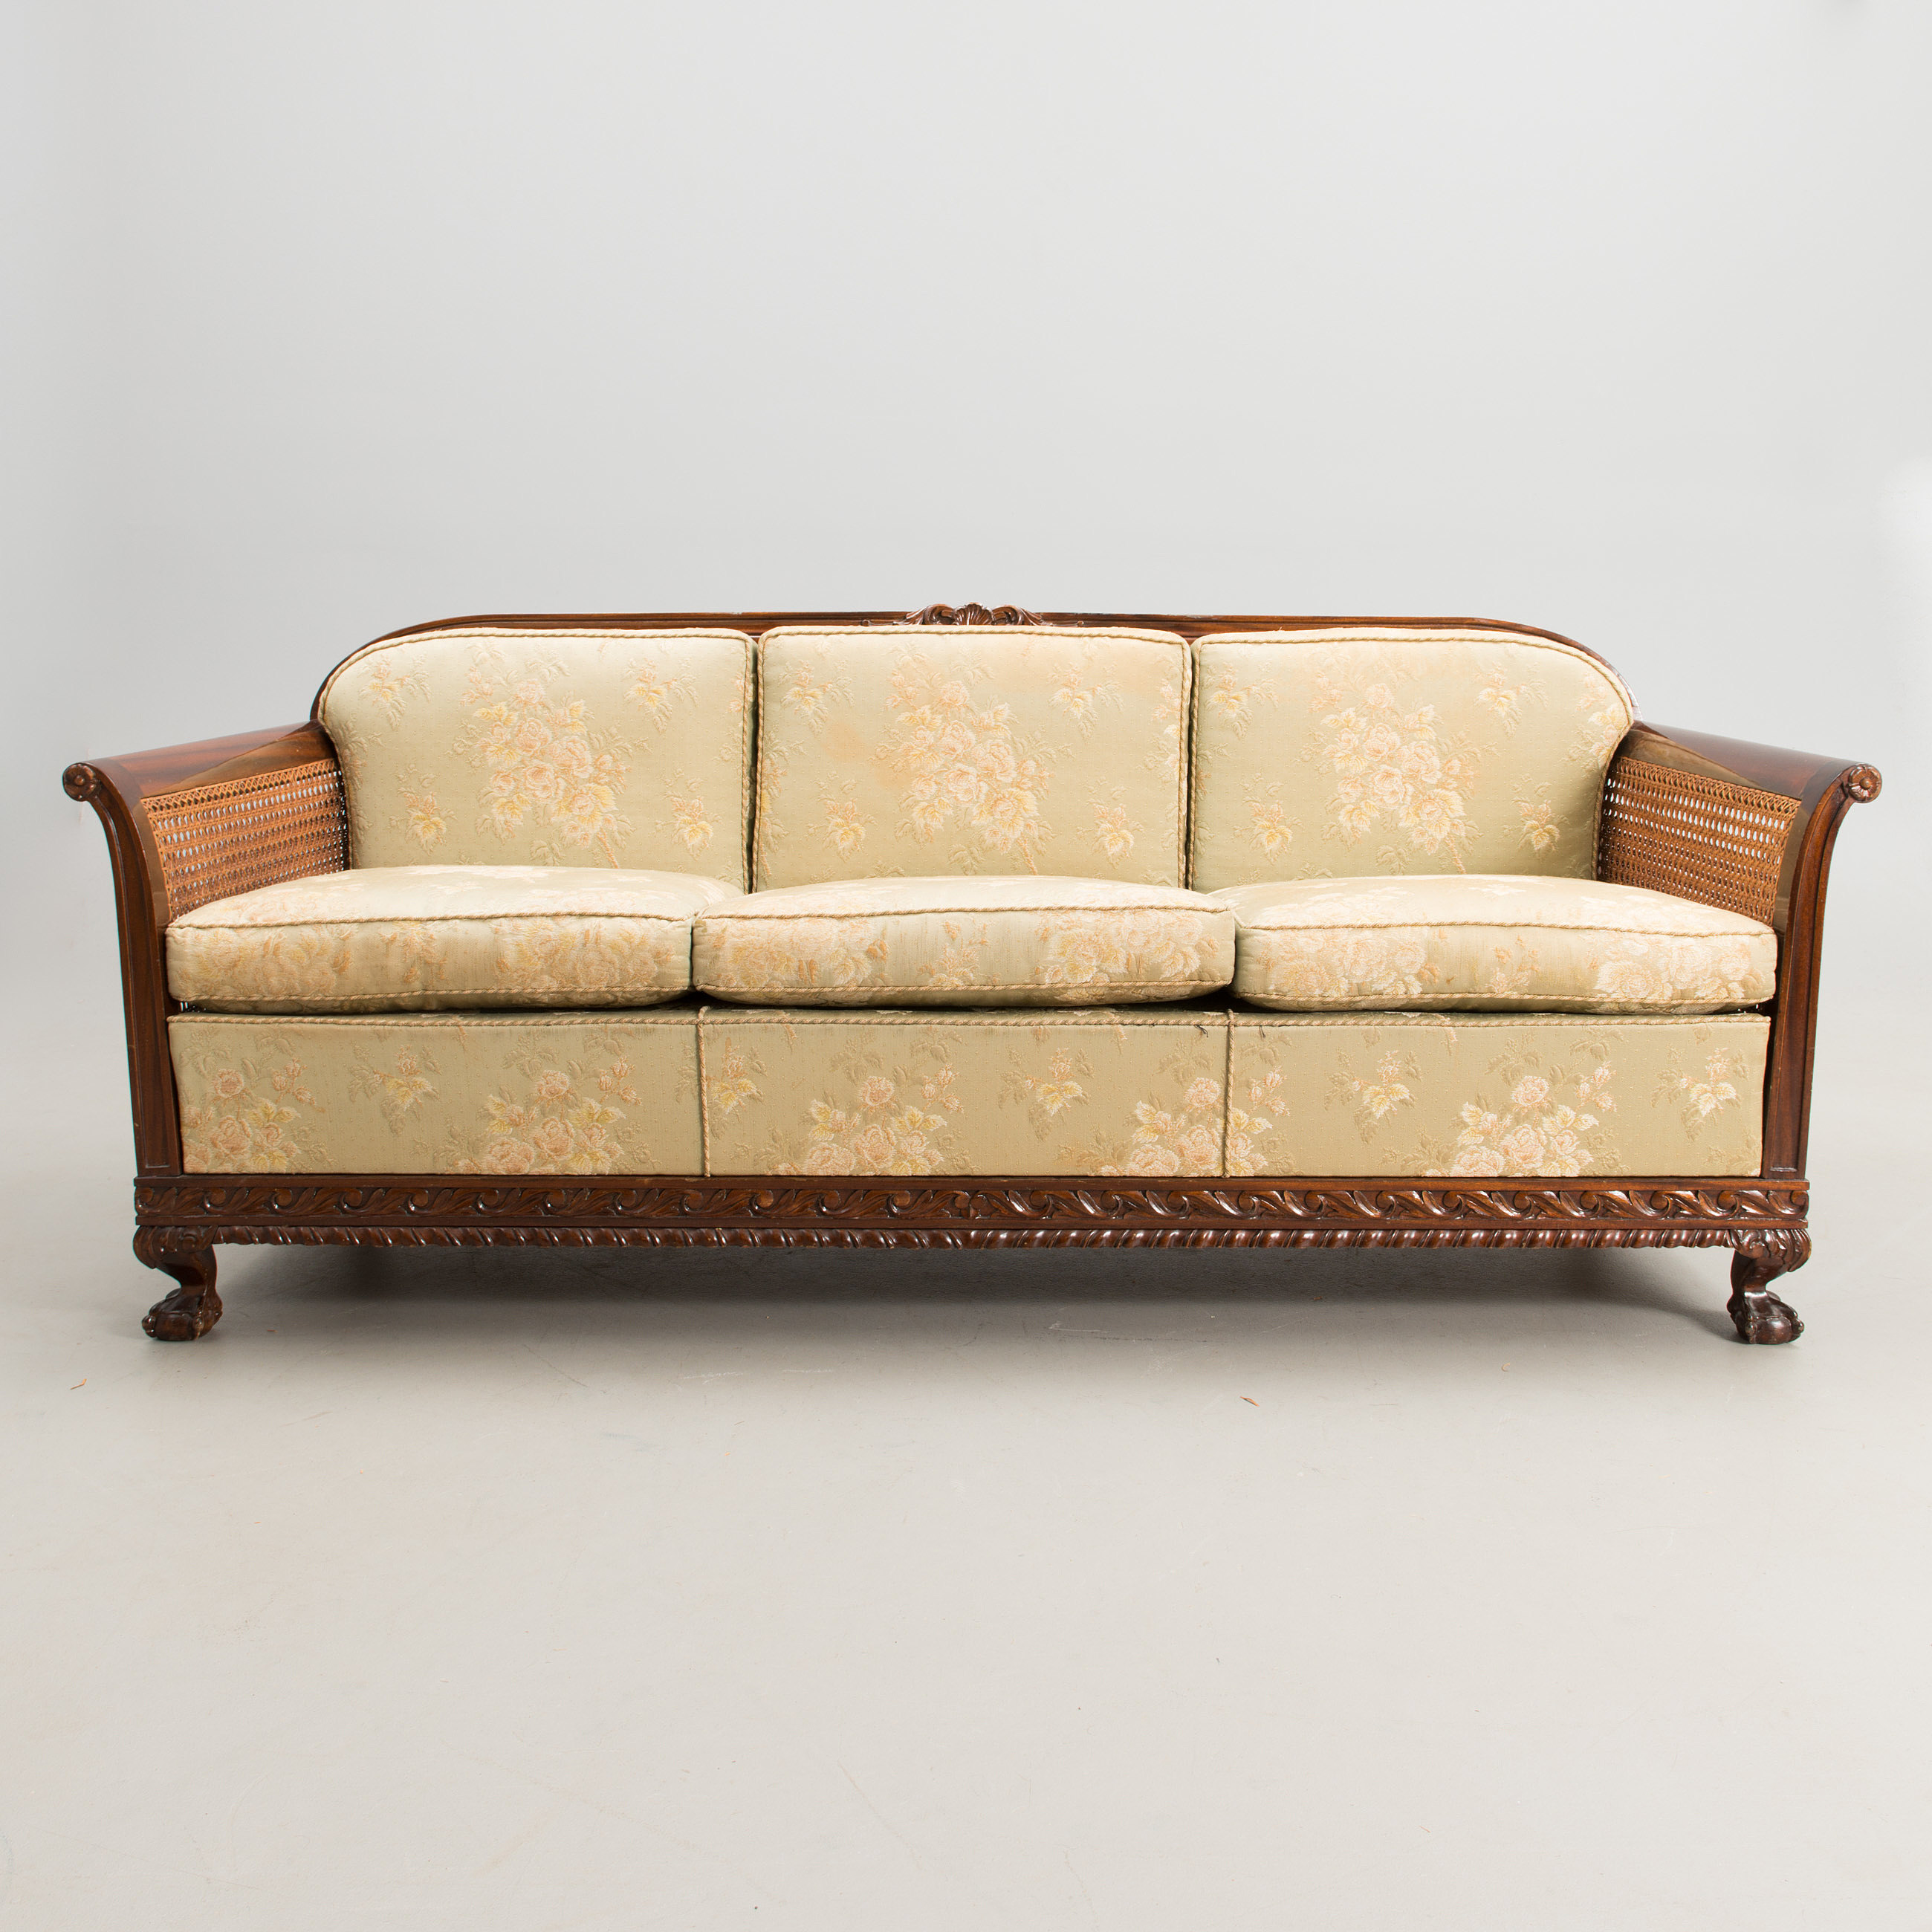 A 1940s sofa in chippendale style for mobilia finland for Mobilia opening hours